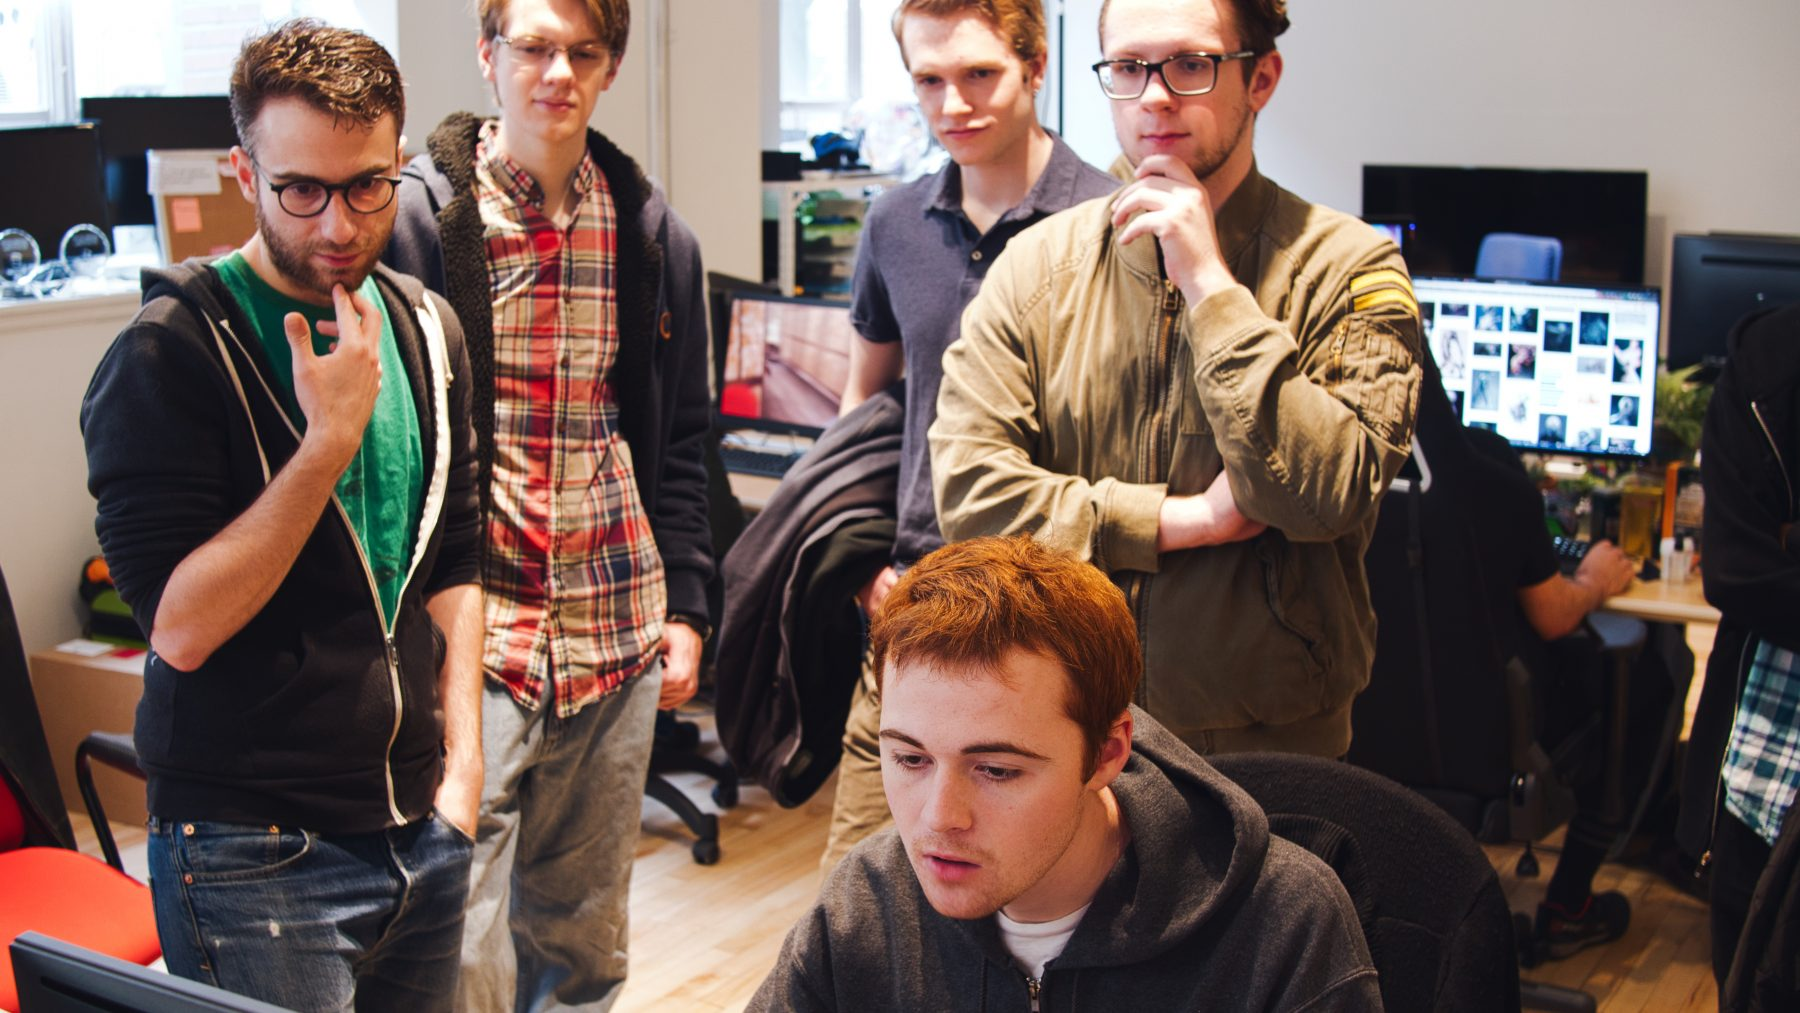 Group of students looking thoughtfully at a computer screen